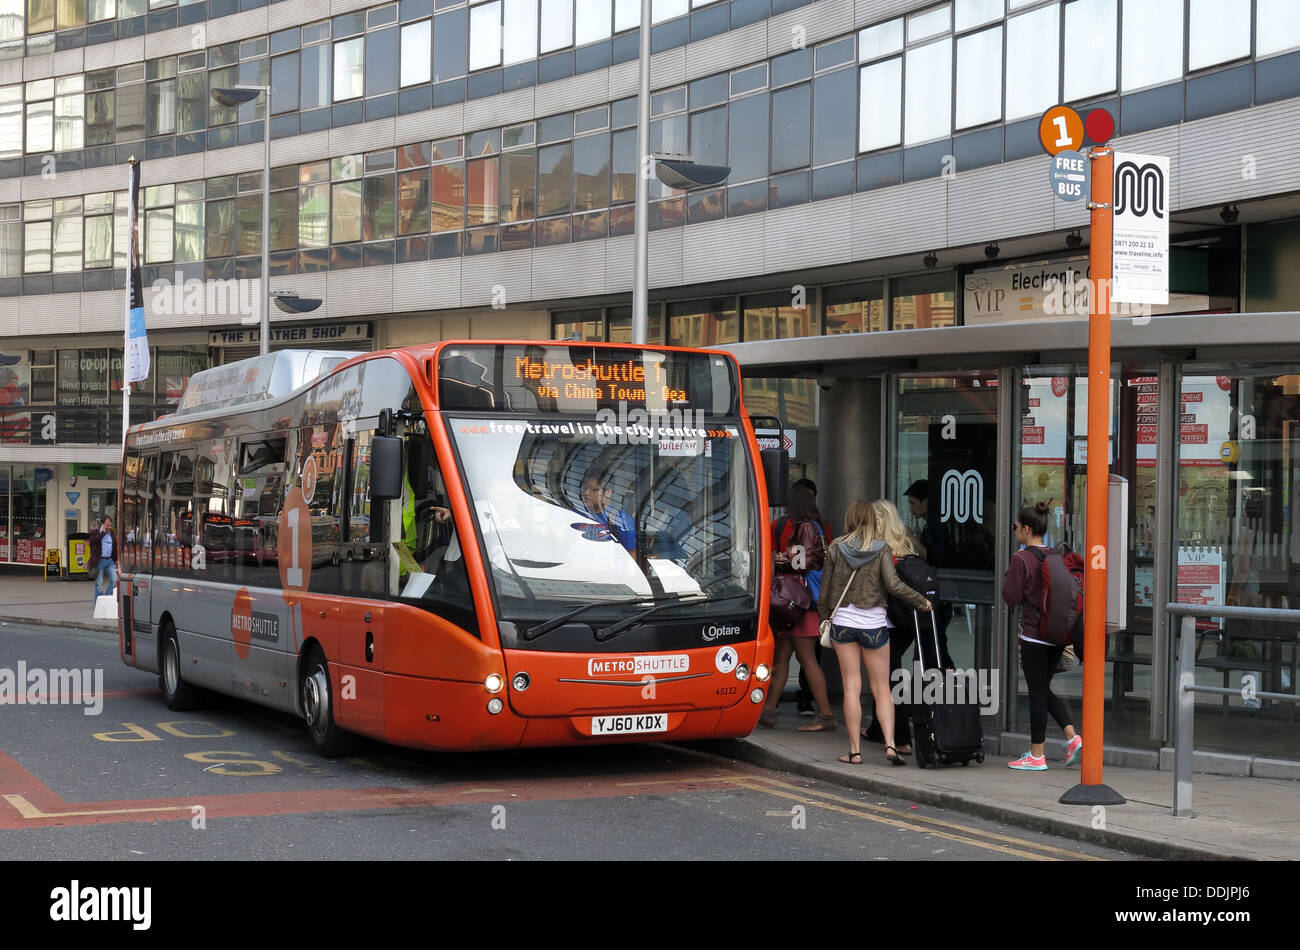 Piccadilly,railway,red,at,bus,stop,shuttle,free,bus,system,that,operates,in,Manchester,city,centre,and,Bolton,and,Stockport,town,centres,all,in,Greater,England,queue,queues,red,silver,MetroShuttle,optare,1,one,deansgate,china,town,freebus,buses,gotonysmith,Buy Pictures of,Buy Images Of